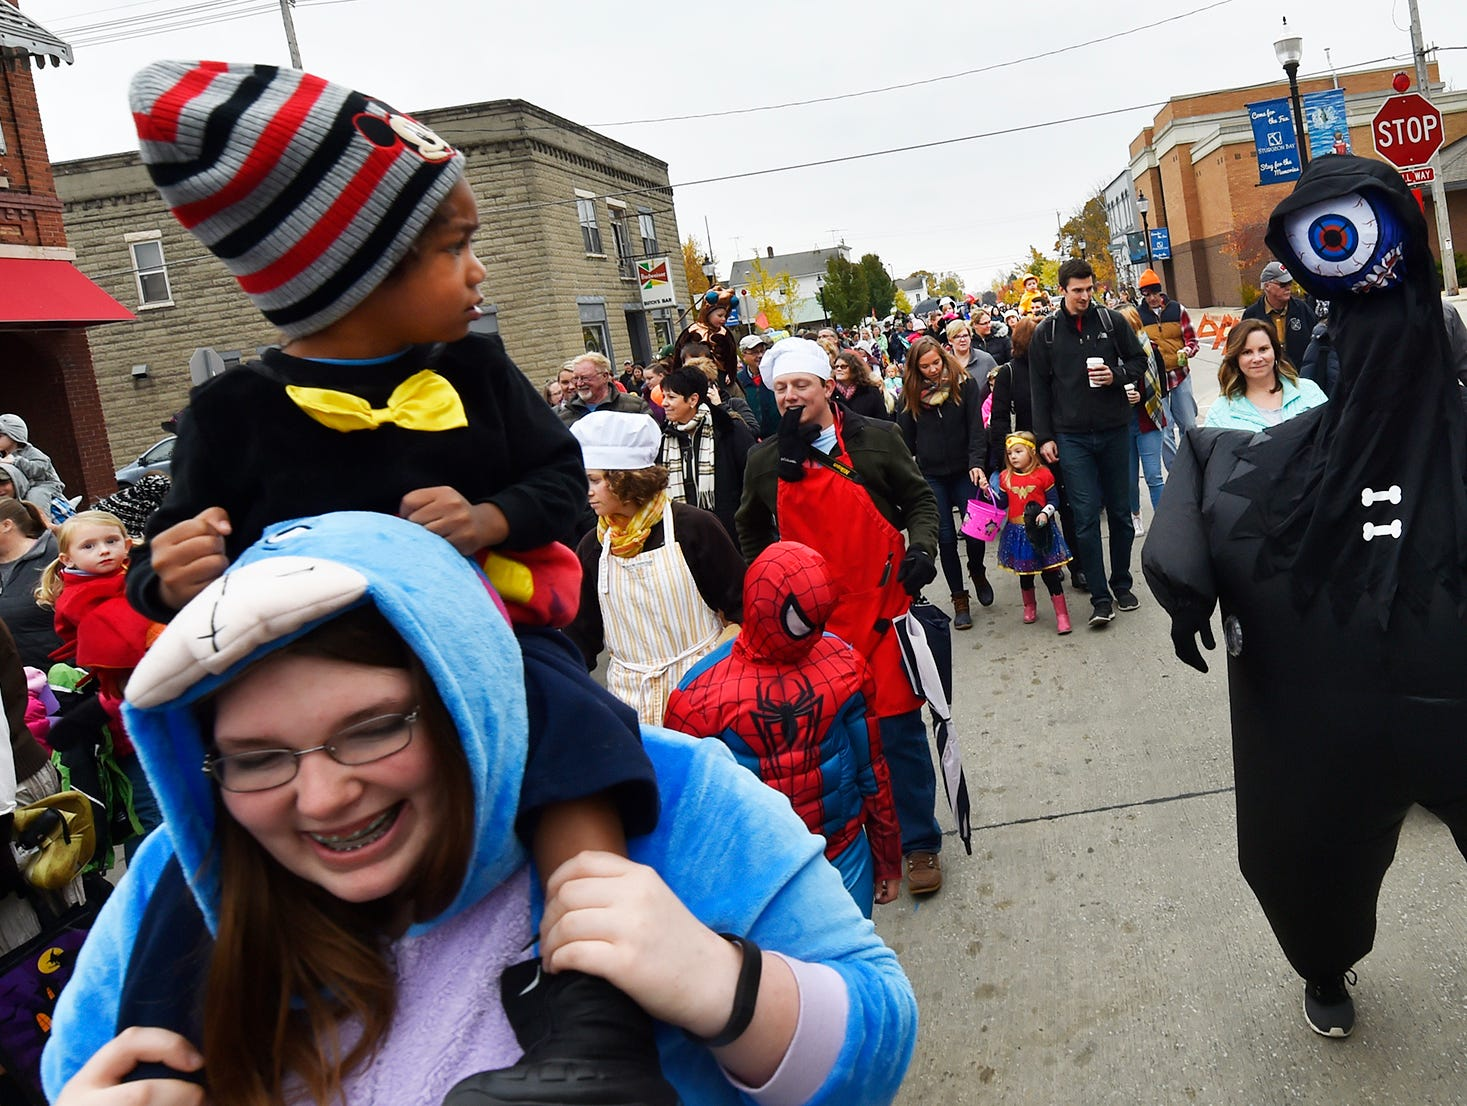 It was a stare-down match between a  skepitcal Blaze Starr (on the shoulders of Alexis Fickett) and the One-Eye Monster (Tyler Olson) during the seventh annual Thrills On Third costume parade on Saturday, Oct. 26, 2018. Tina M. Gohr/USA TODAY NETWORK-Wisconsin